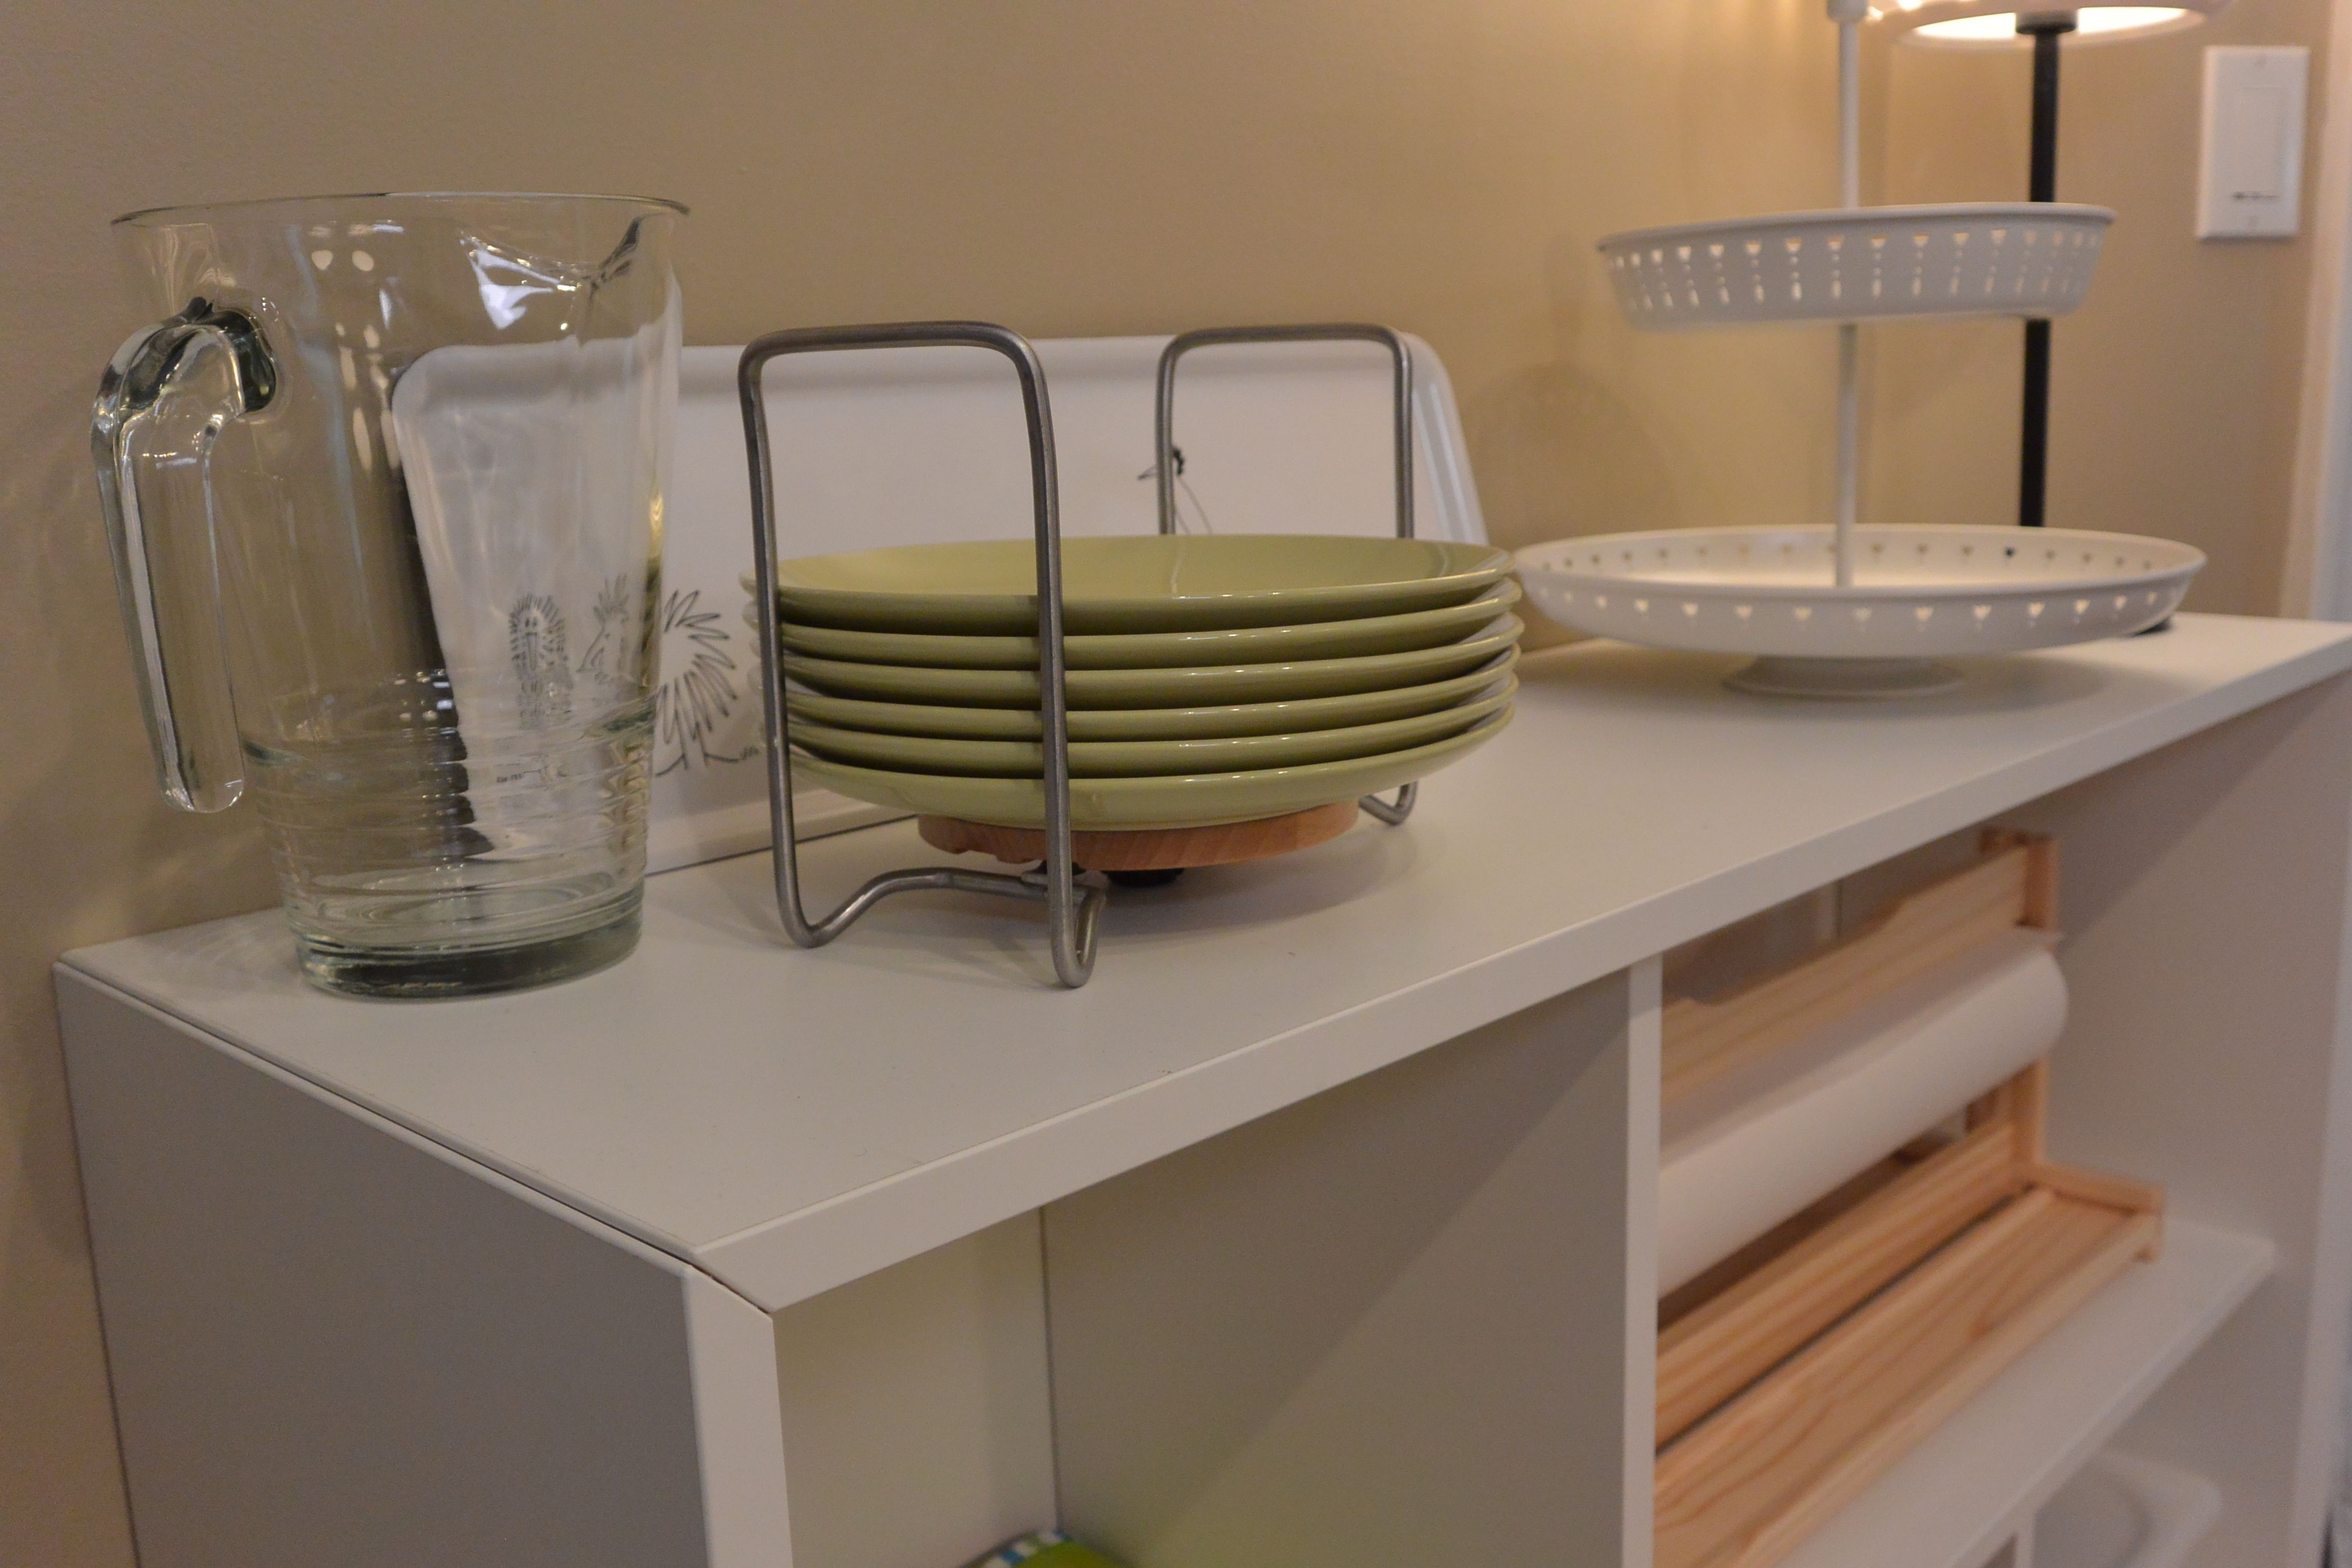 the ikea variera plate holder is adjustable so you can customize rh pinterest com